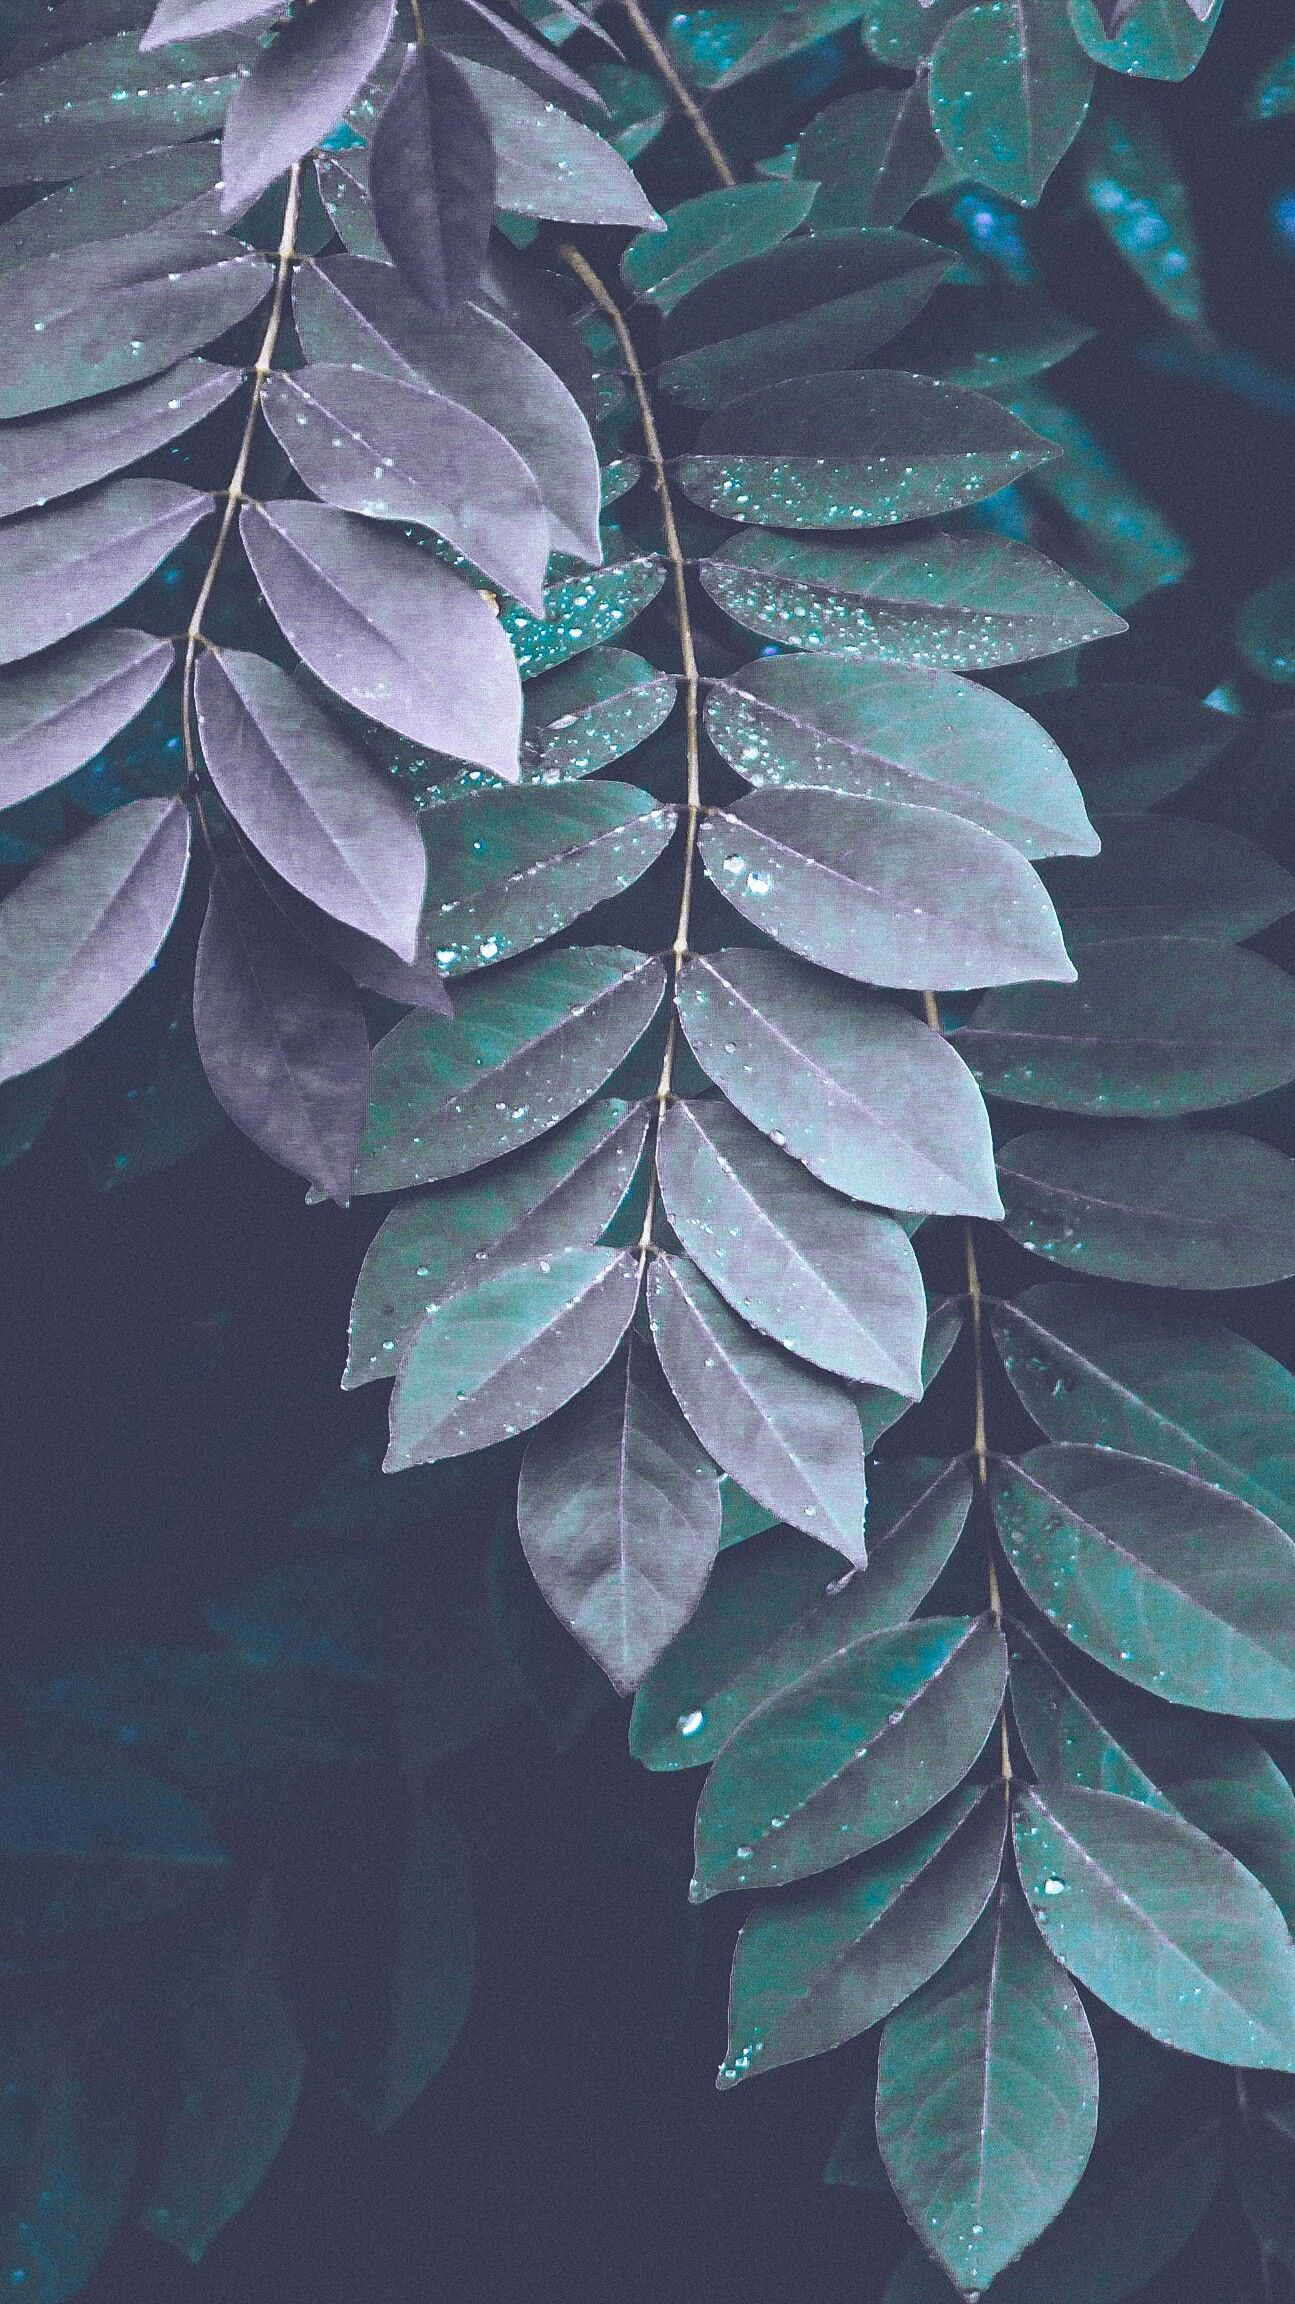 leaf pattern nature bright outdoors light growth flora rain